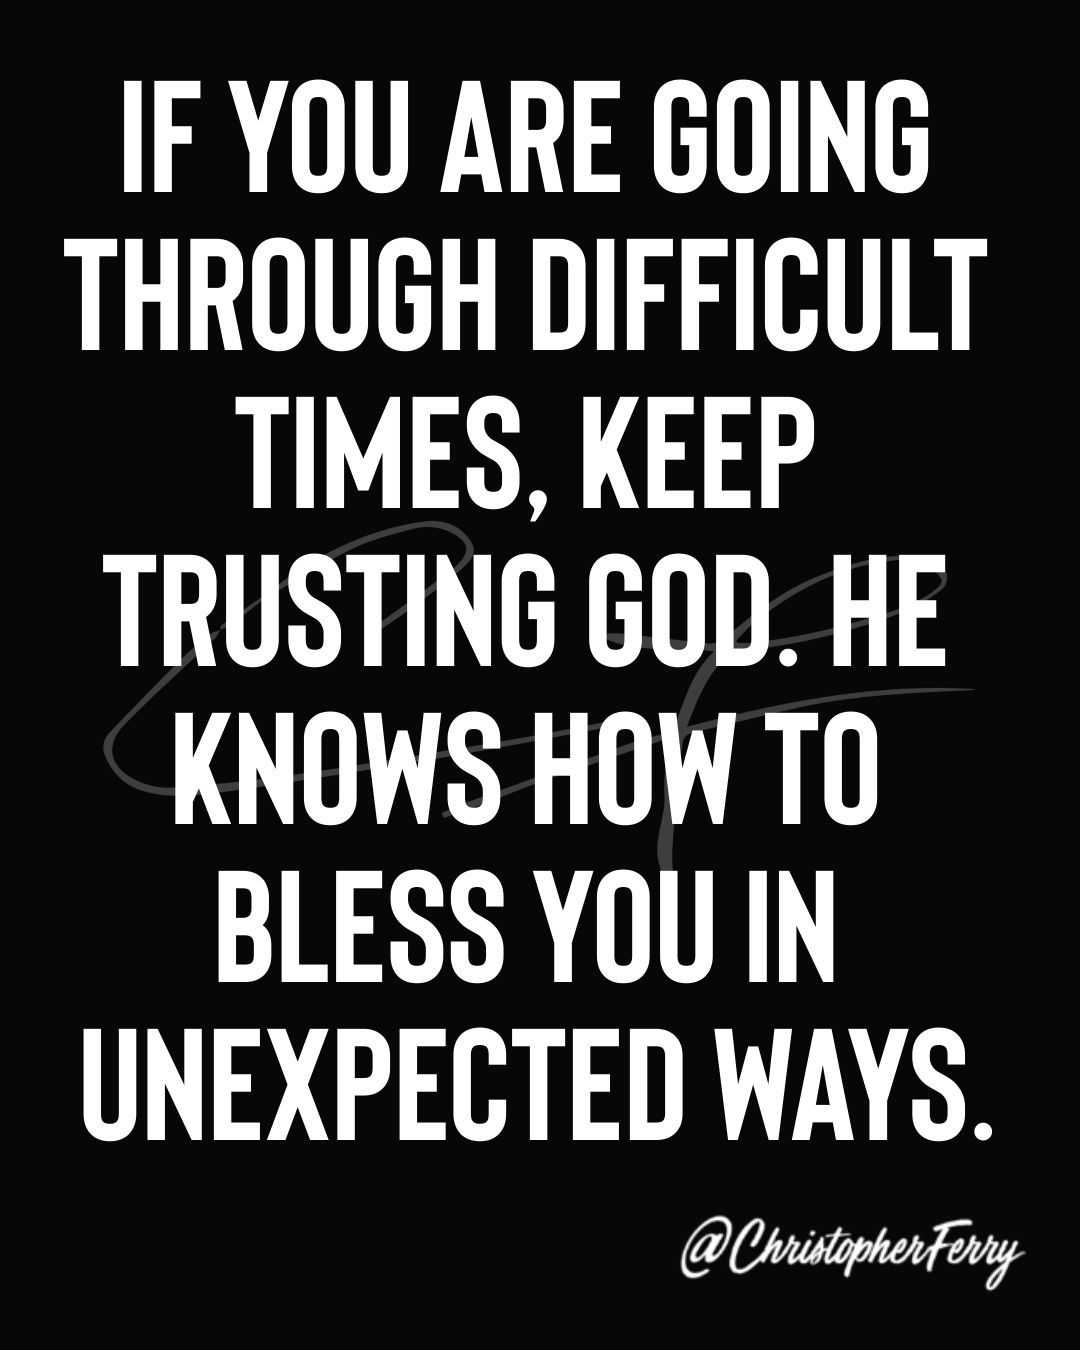 If you are going through difficult times, keep trusting